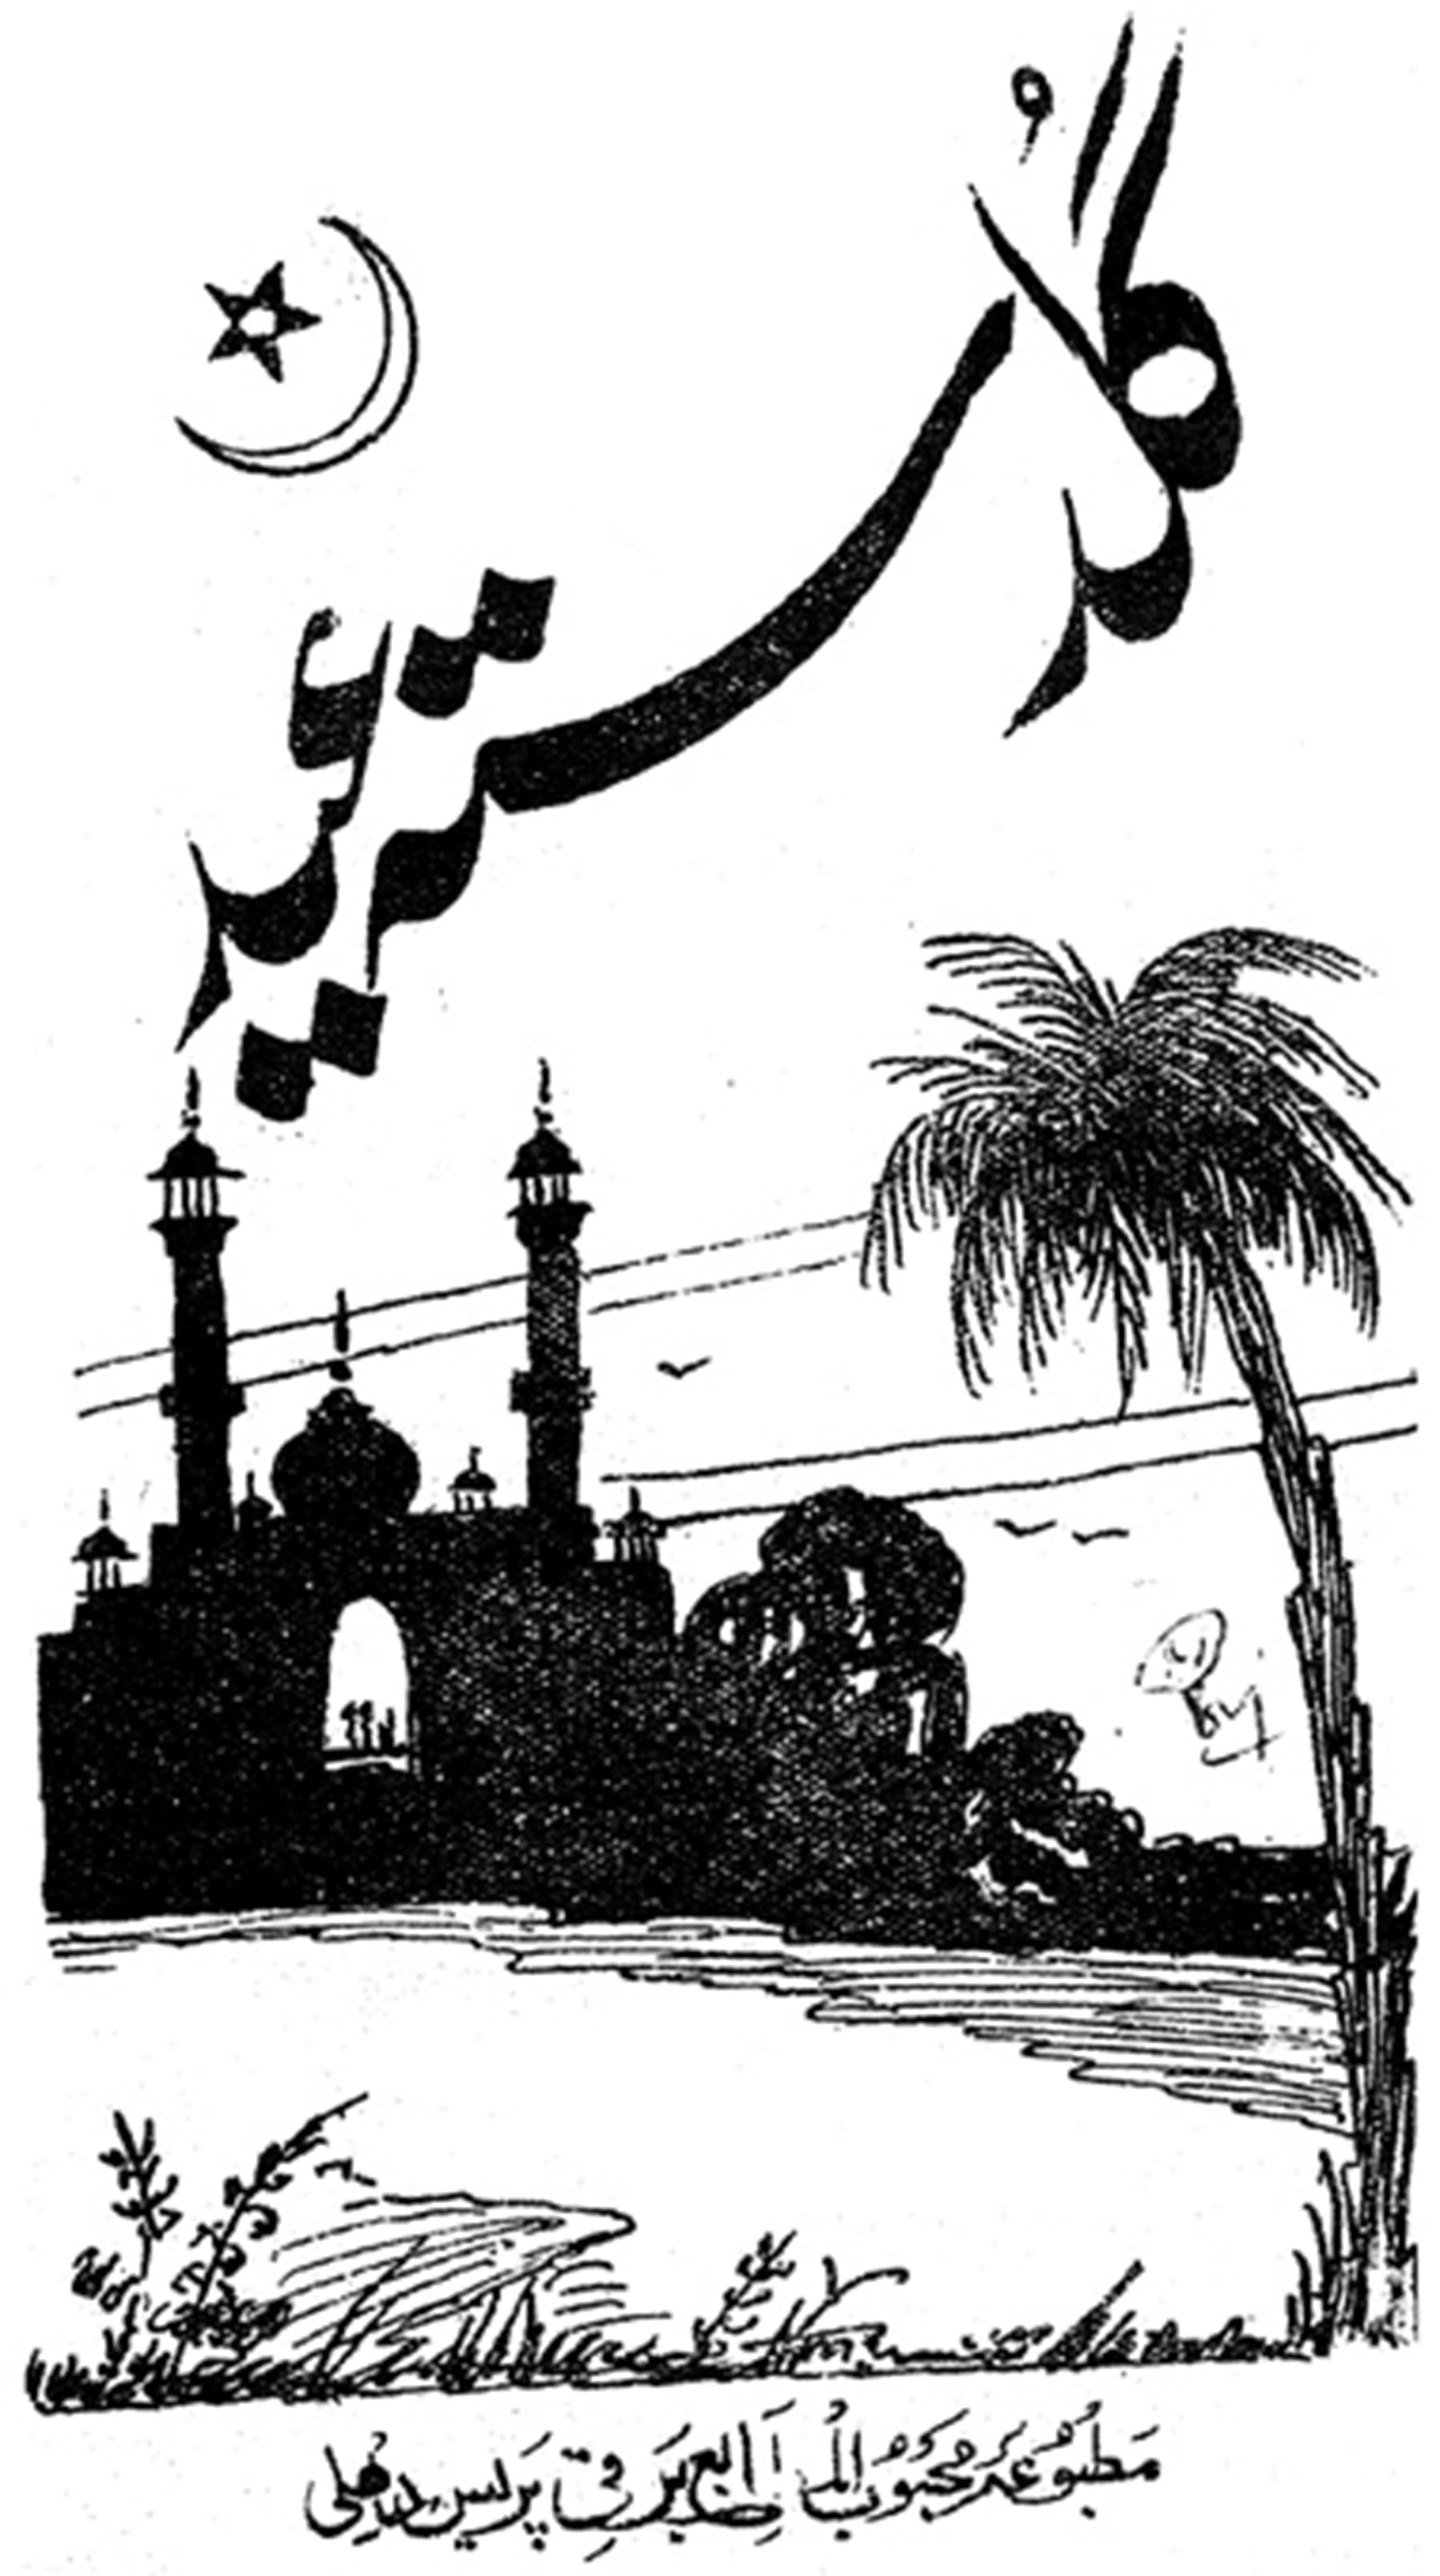 """Guldasta-e Eid"" – title of the chapbook published by Rashid ul Khairi in Mahboob Al Matabah, Delhi."